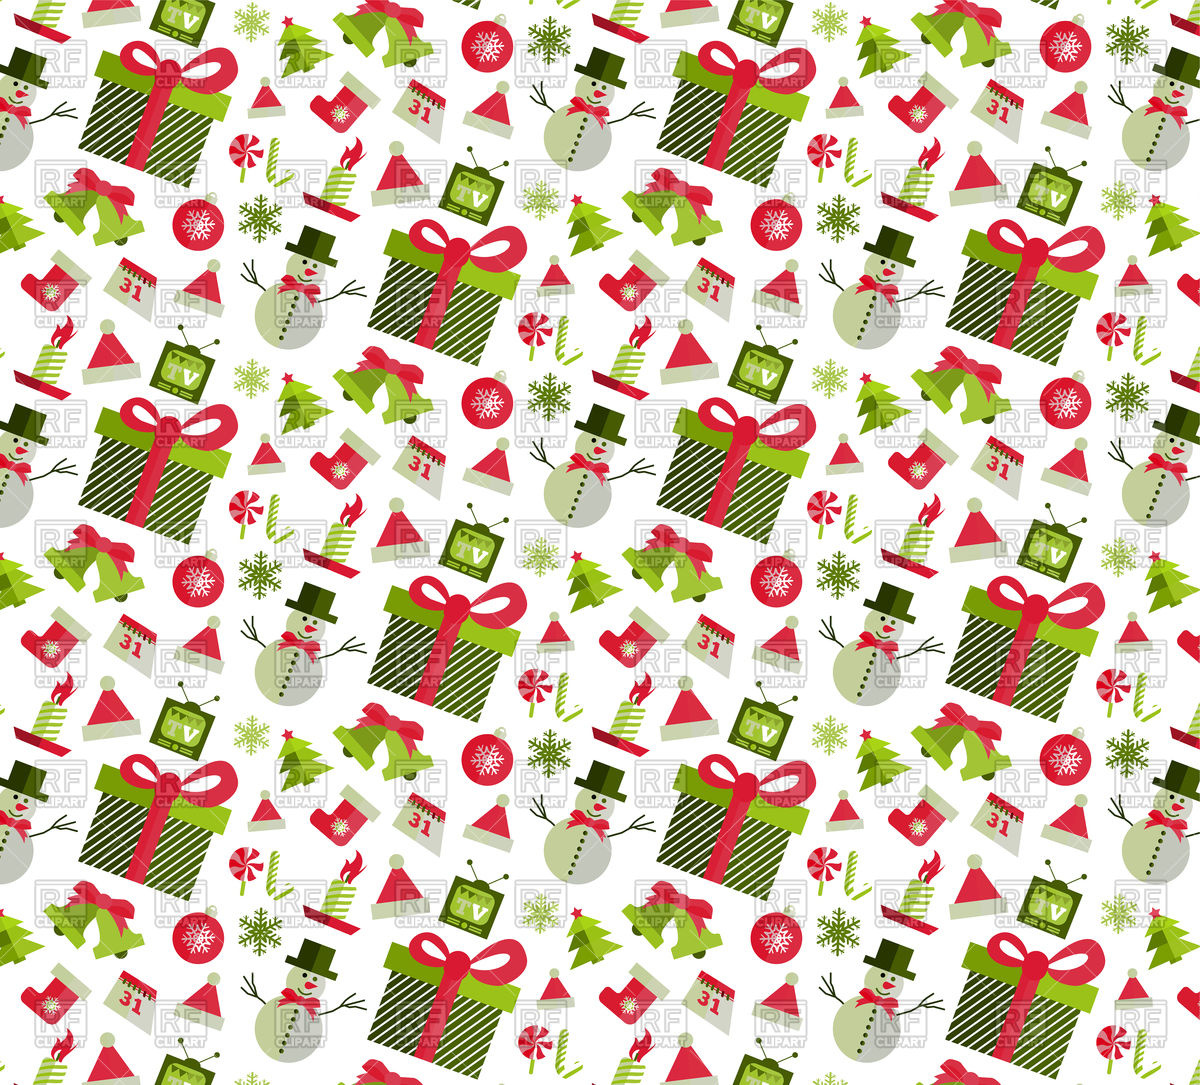 1200x1085 Seamless Pattern With Christmas Design Elements Vector Image